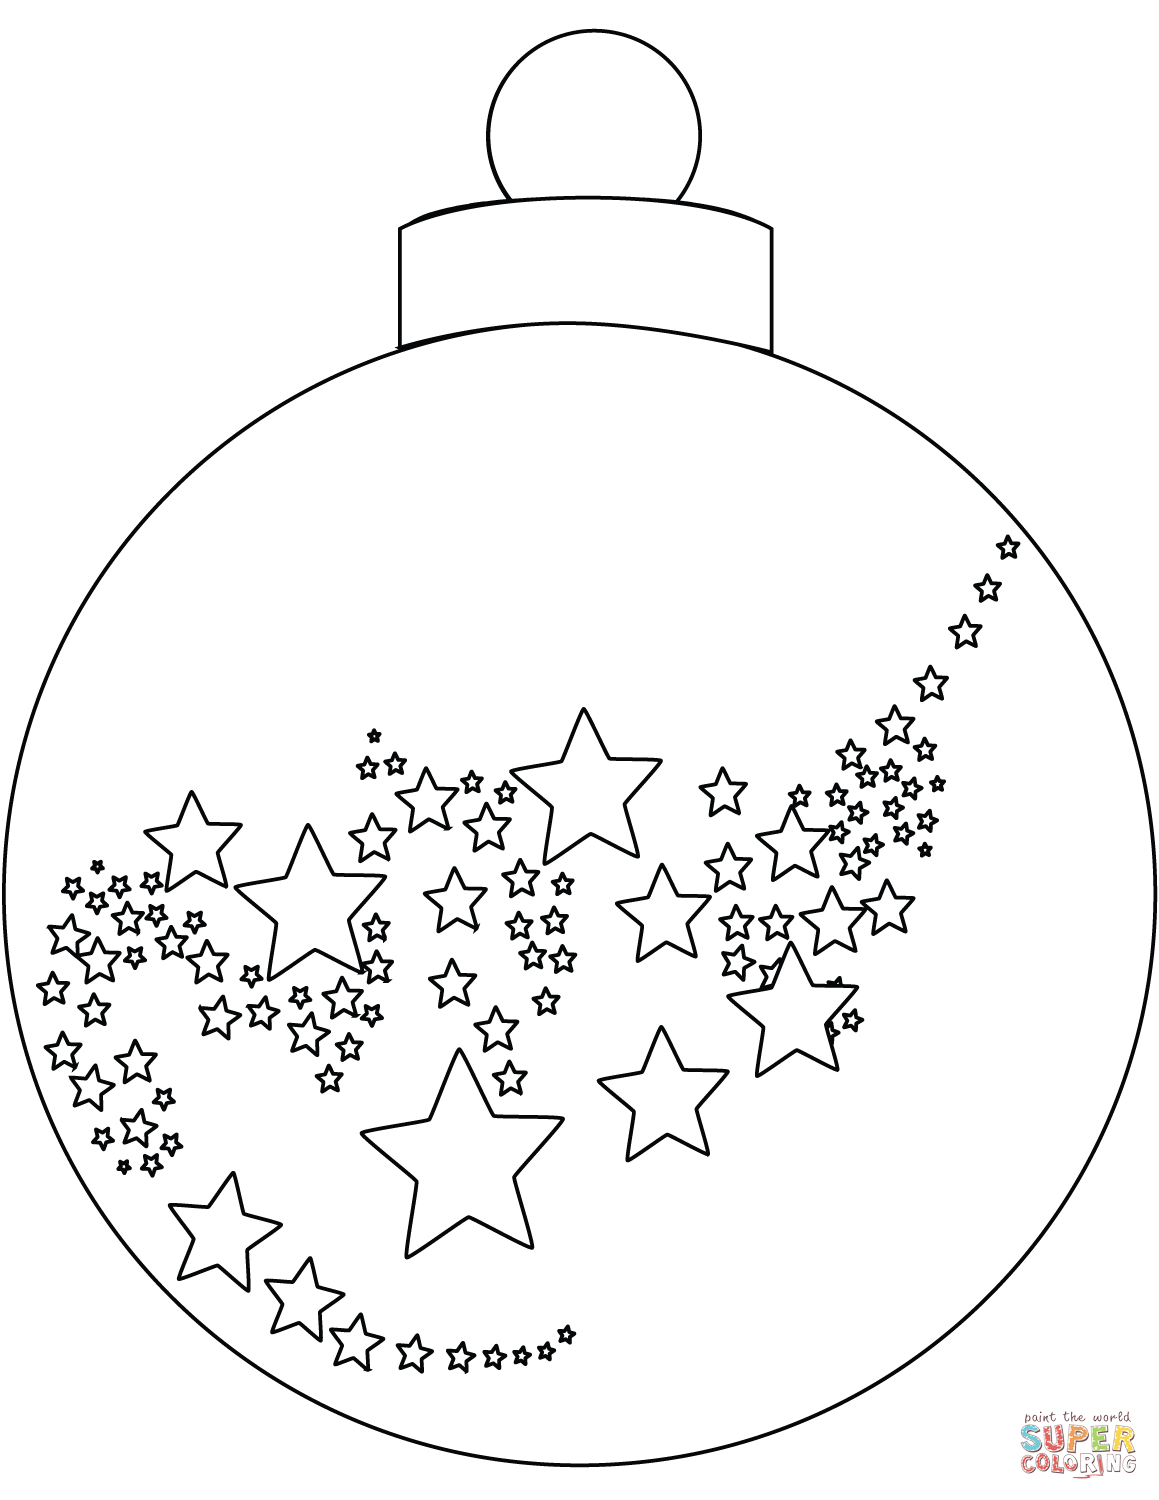 Christmas Ornament Coloring Page | Free Printable Coloring Pages - Free Printable Christmas Ornament Coloring Pages